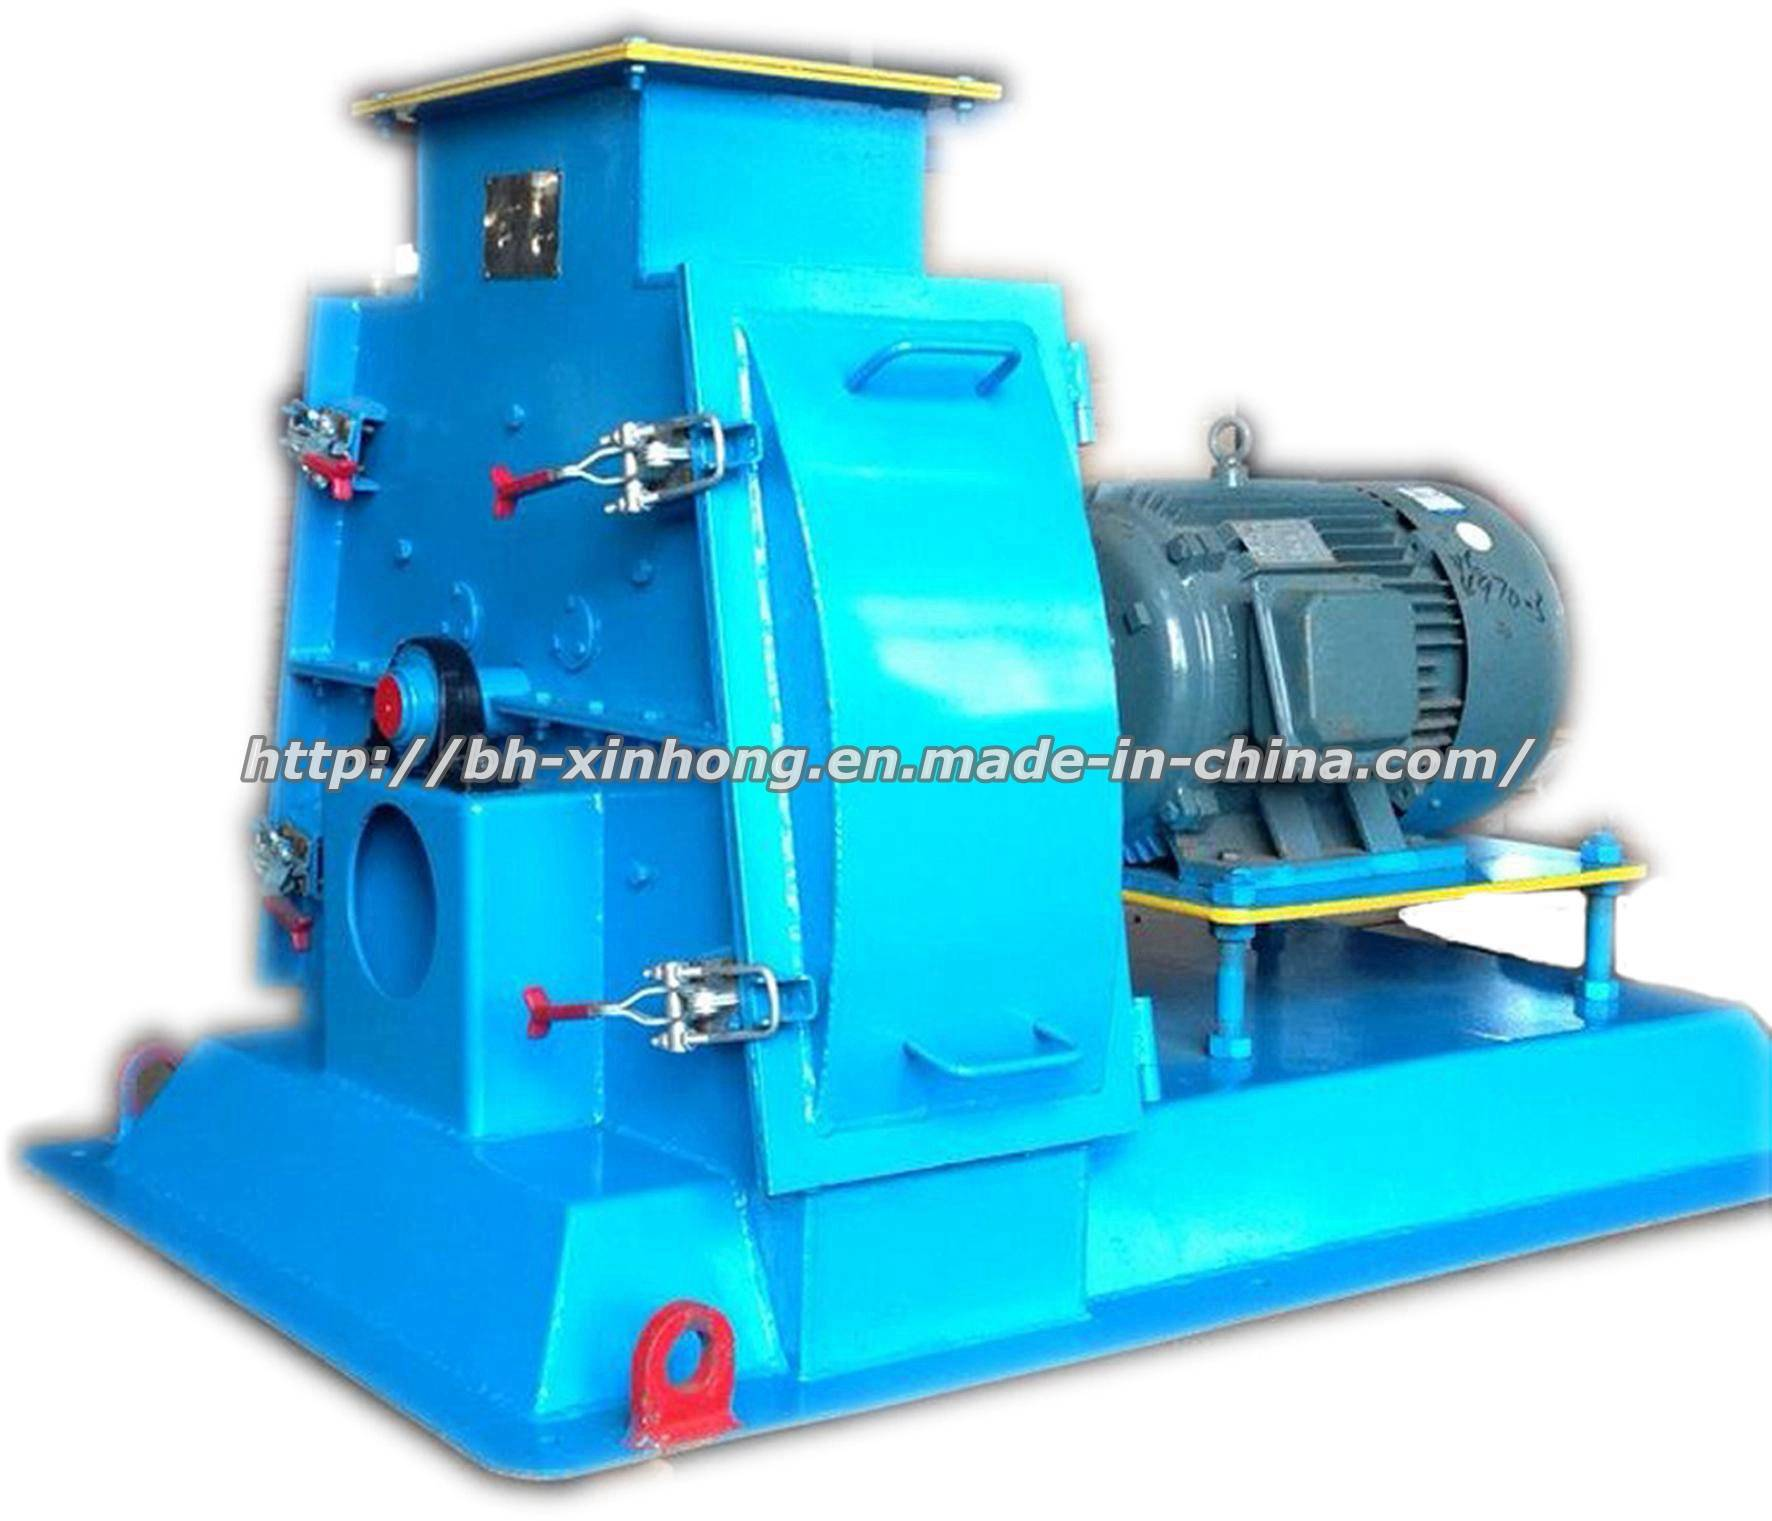 Fishmeal Grinder with Fine Particles Milling Ability